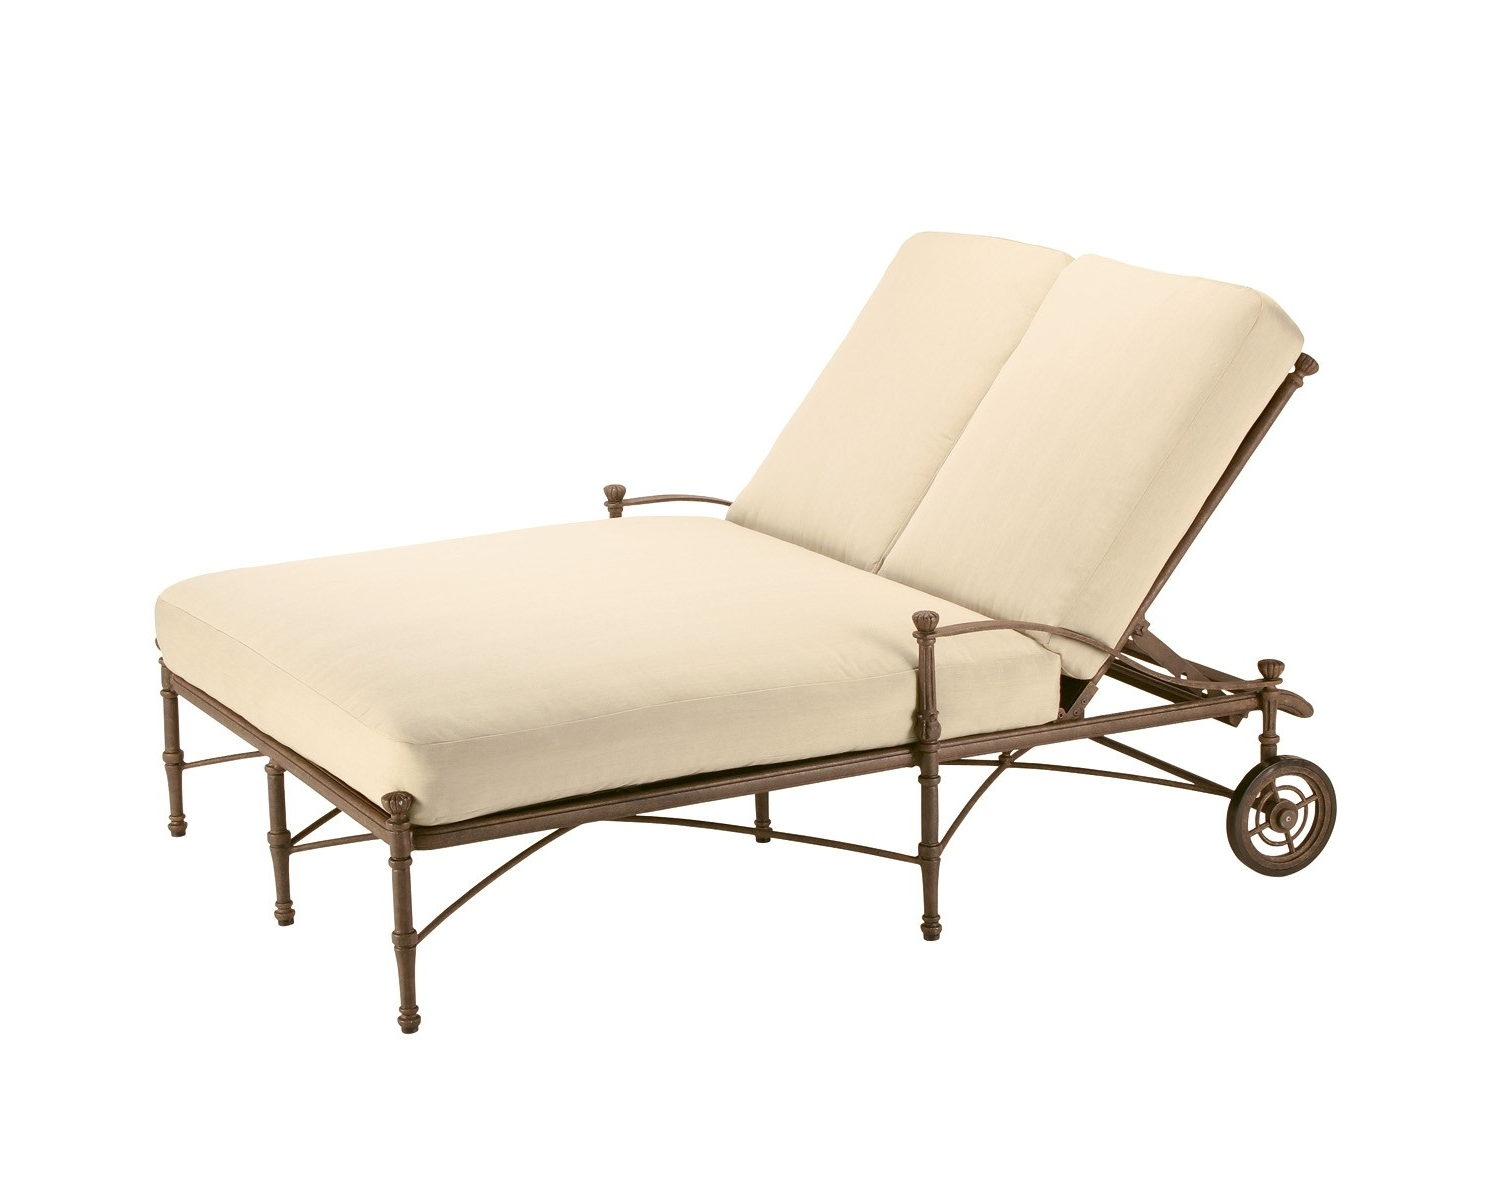 Kettler Lounge 15 The Best Kettler Chaise Lounge Chairs